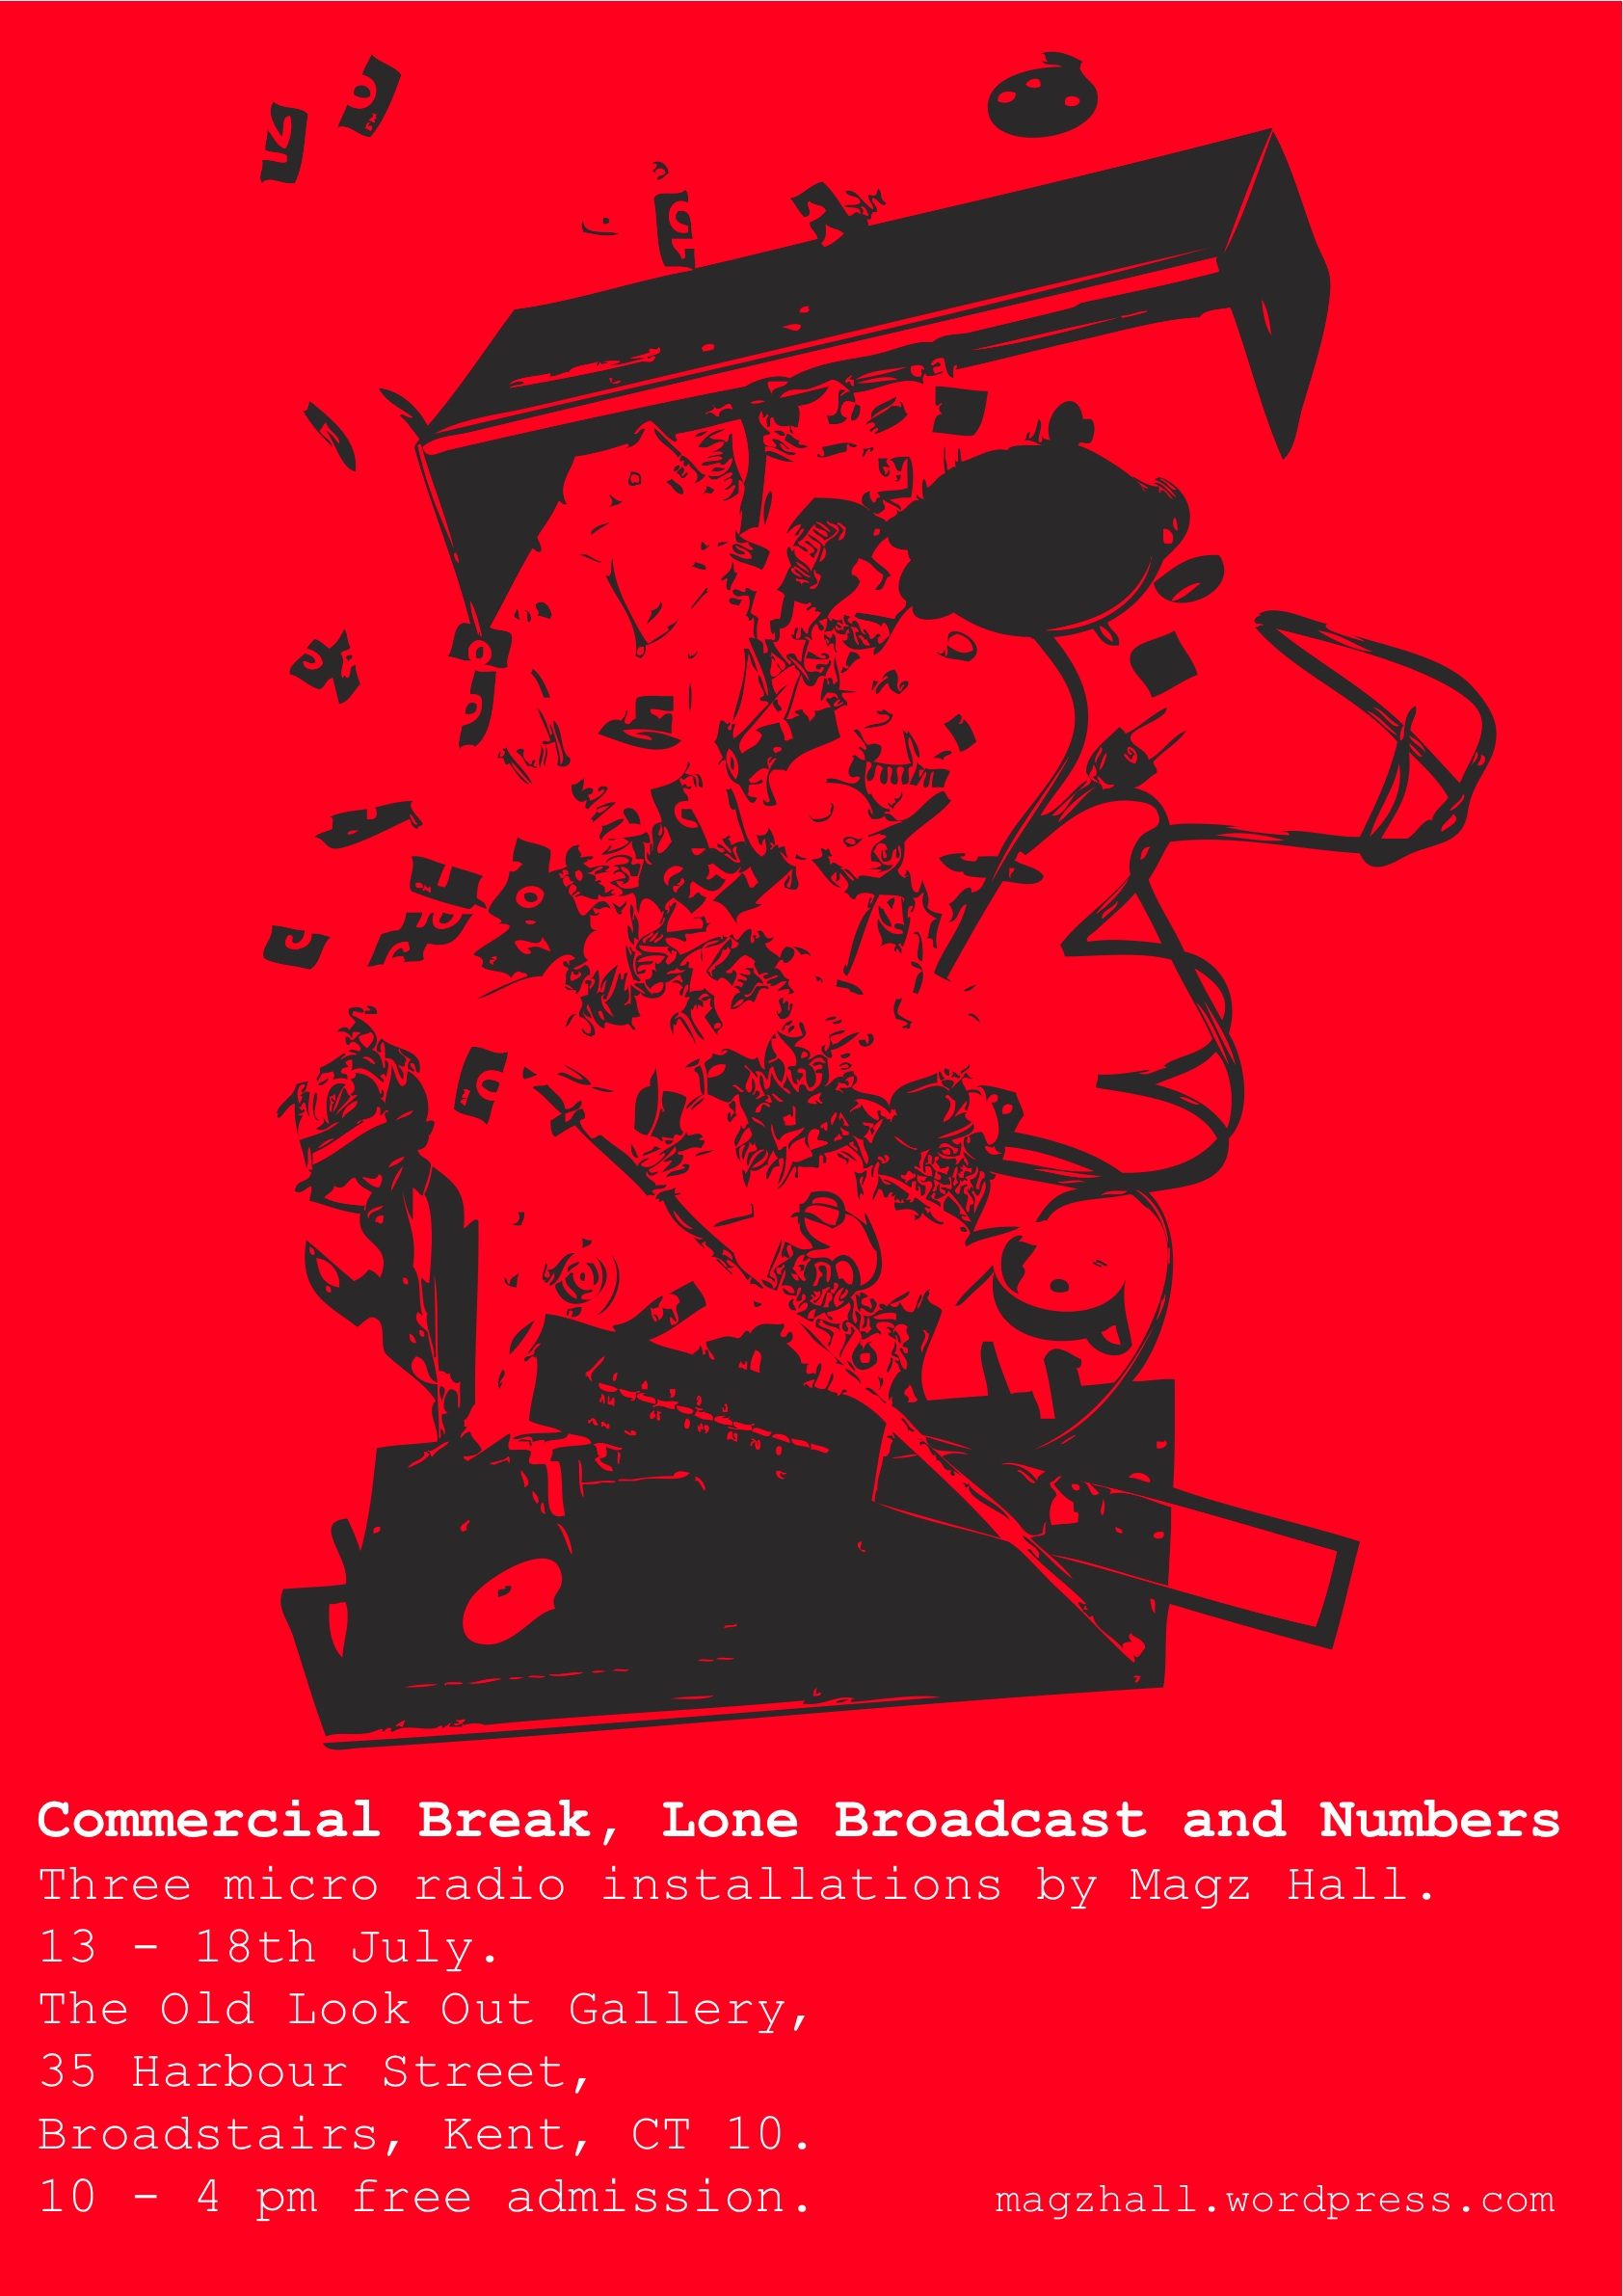 Magz Hall: Commercial Break, Lone Broadcast and Numbers Stations